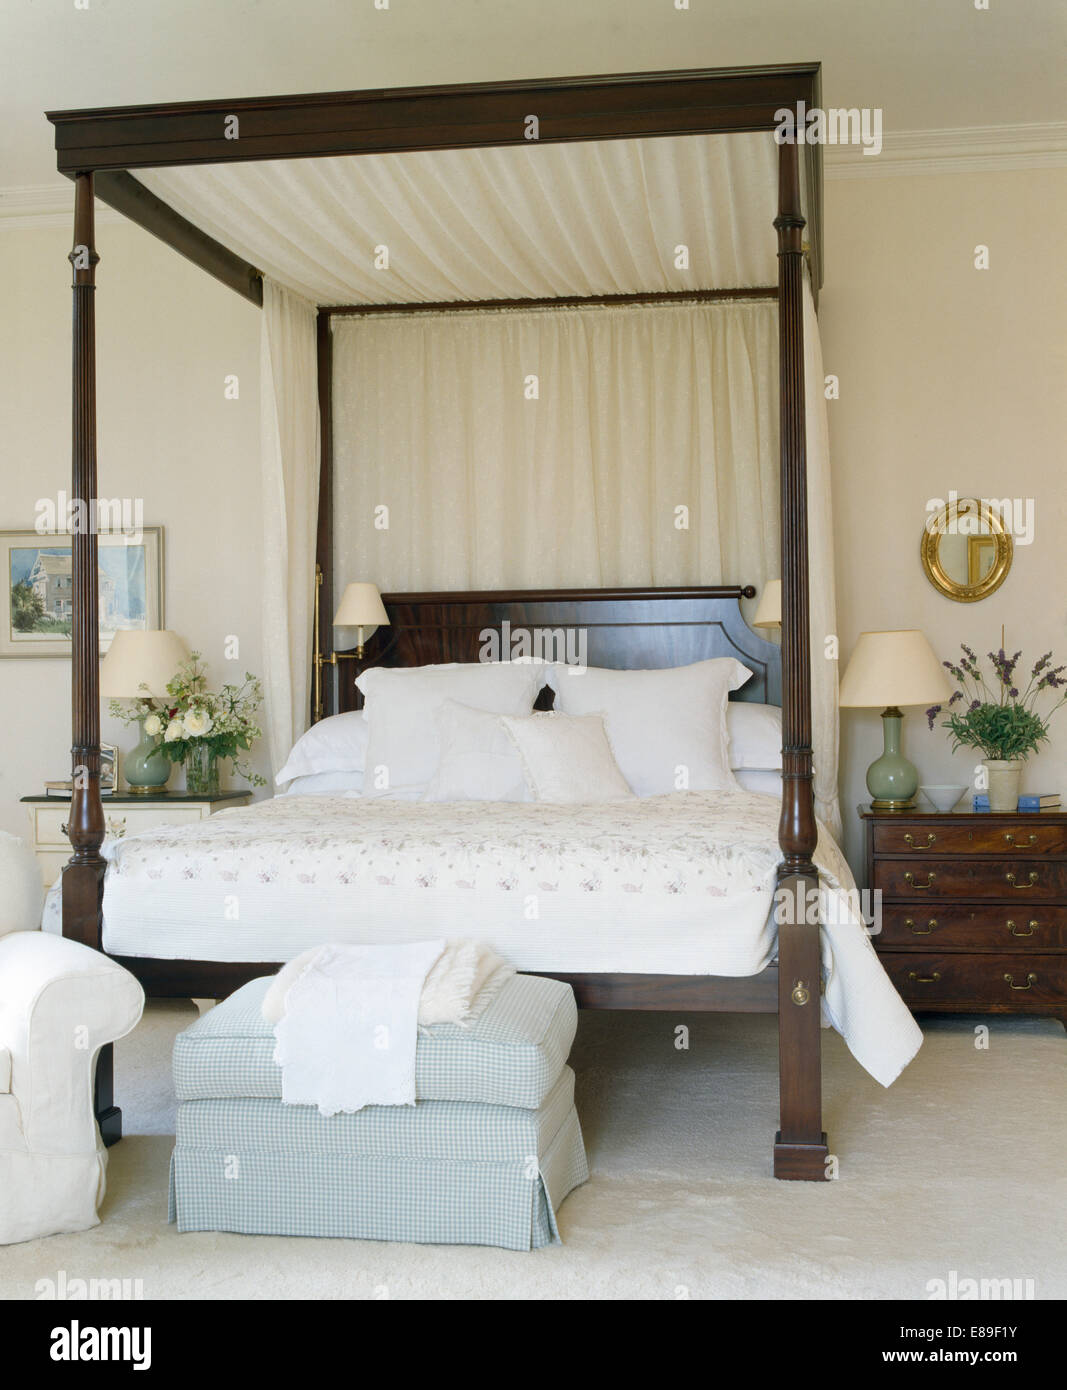 4 Post Bed White Cream Drapes On Dark Wood Four Poster Bed With White Linen